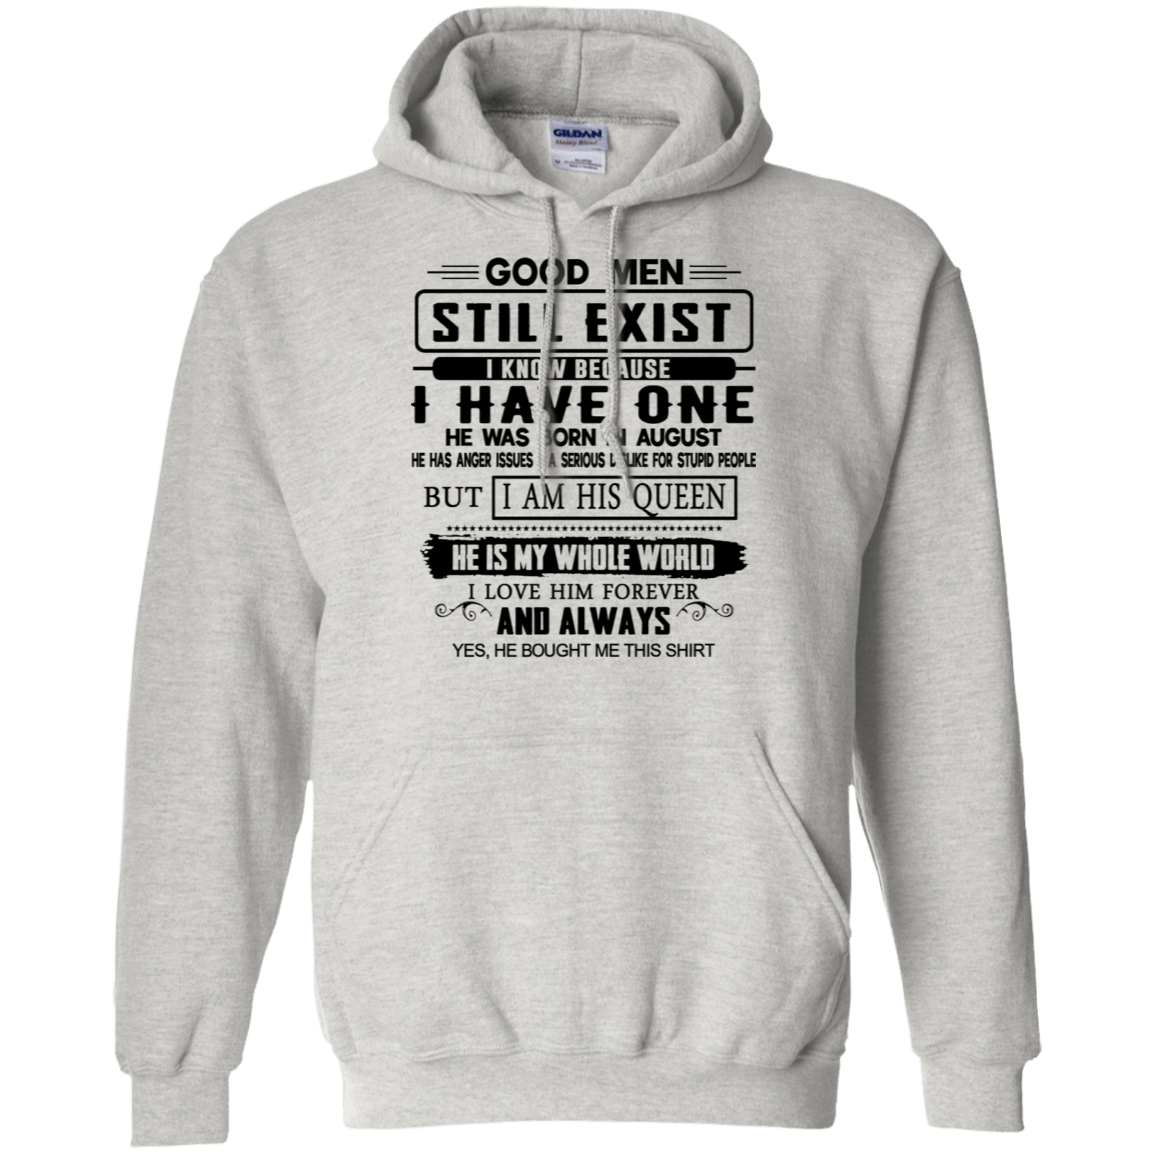 Good Men Still Exist I Have One He Was Born In August T-Shirts & Hoodies 541-4748-76215678-23071 - Tee Ript